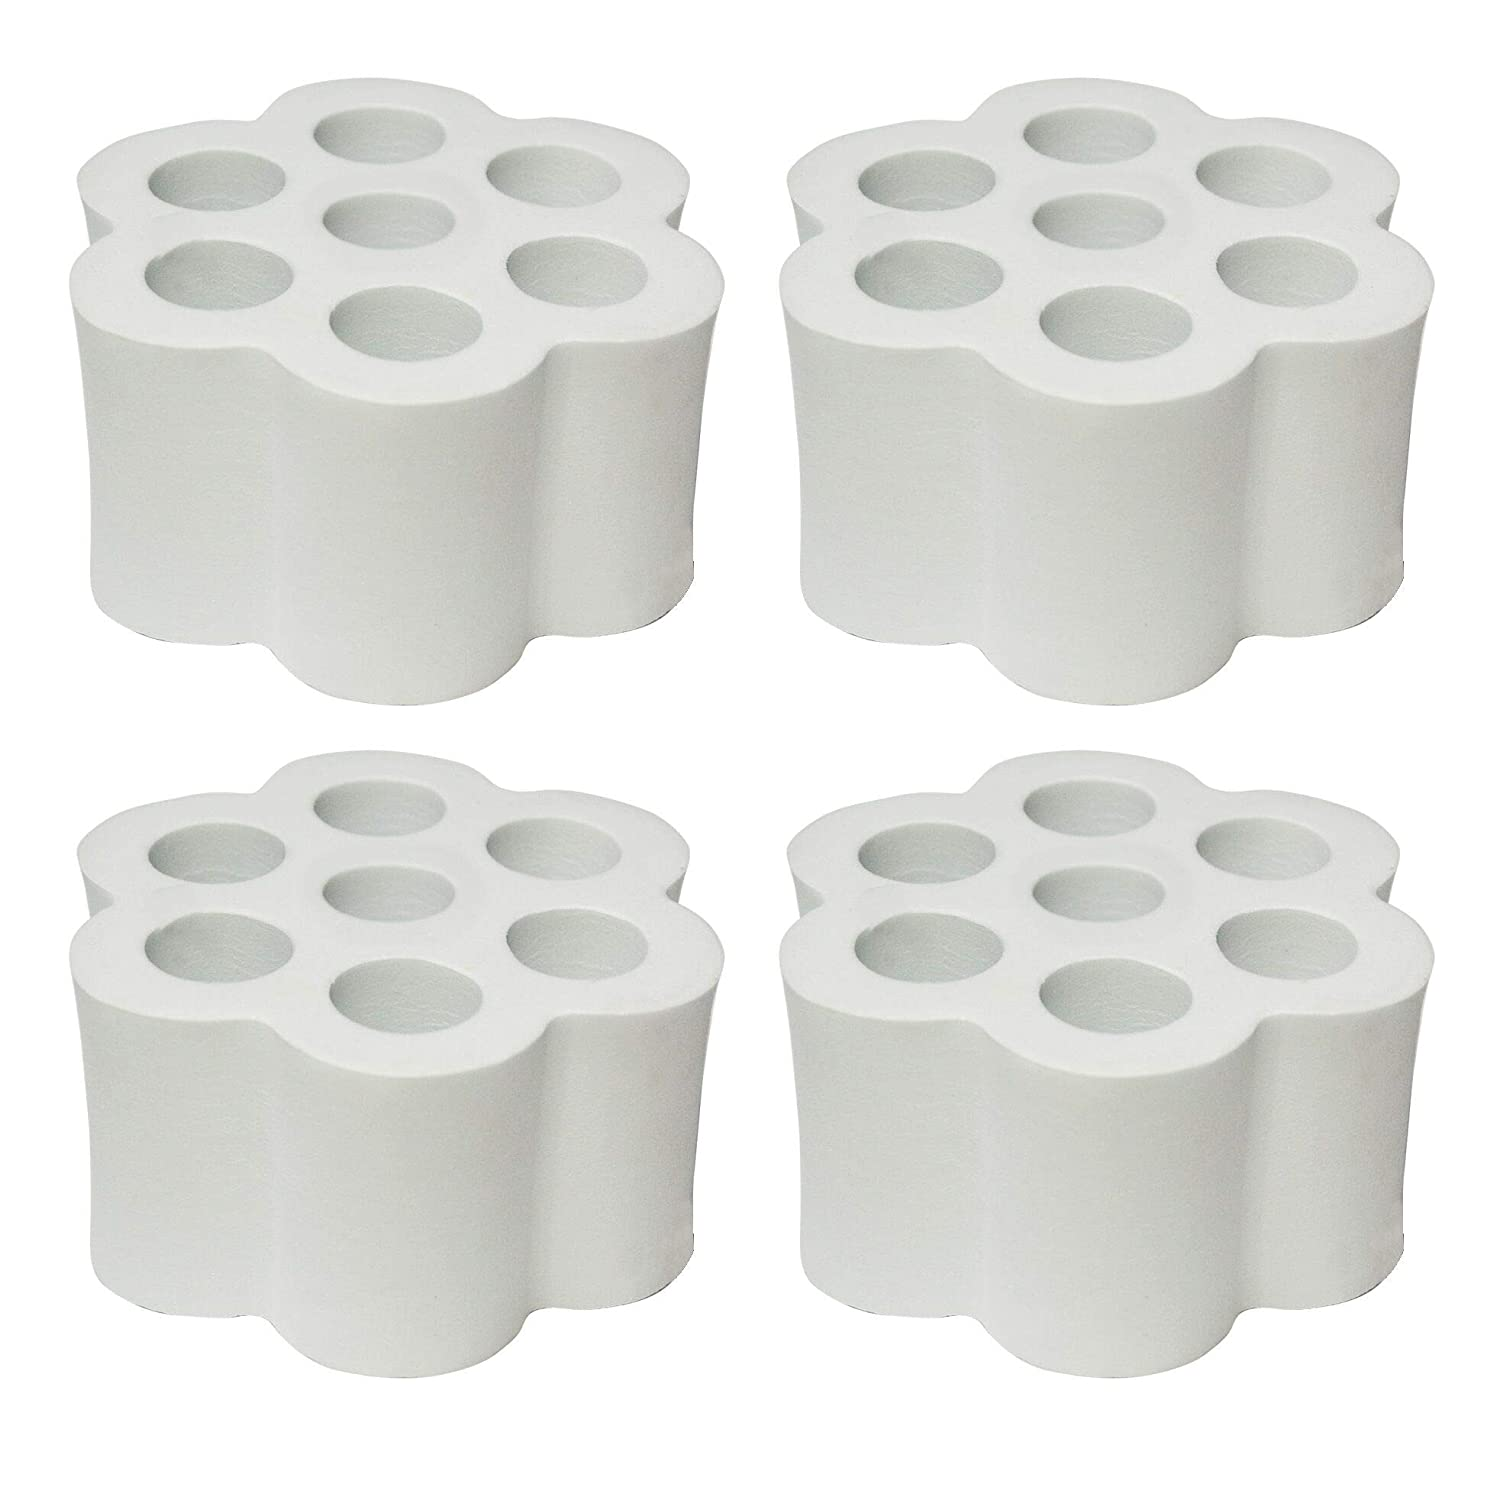 """Cup Turner Foam 4 Pieces Cup Turner Accessories fit 20 30 oz Tumbler for 1//2 /"""" PVC Pipe High Density Foam The Partner for Cup Spinner Machine 2 for 30 oz Tumbler and 2 for 20 oz Tumbler"""